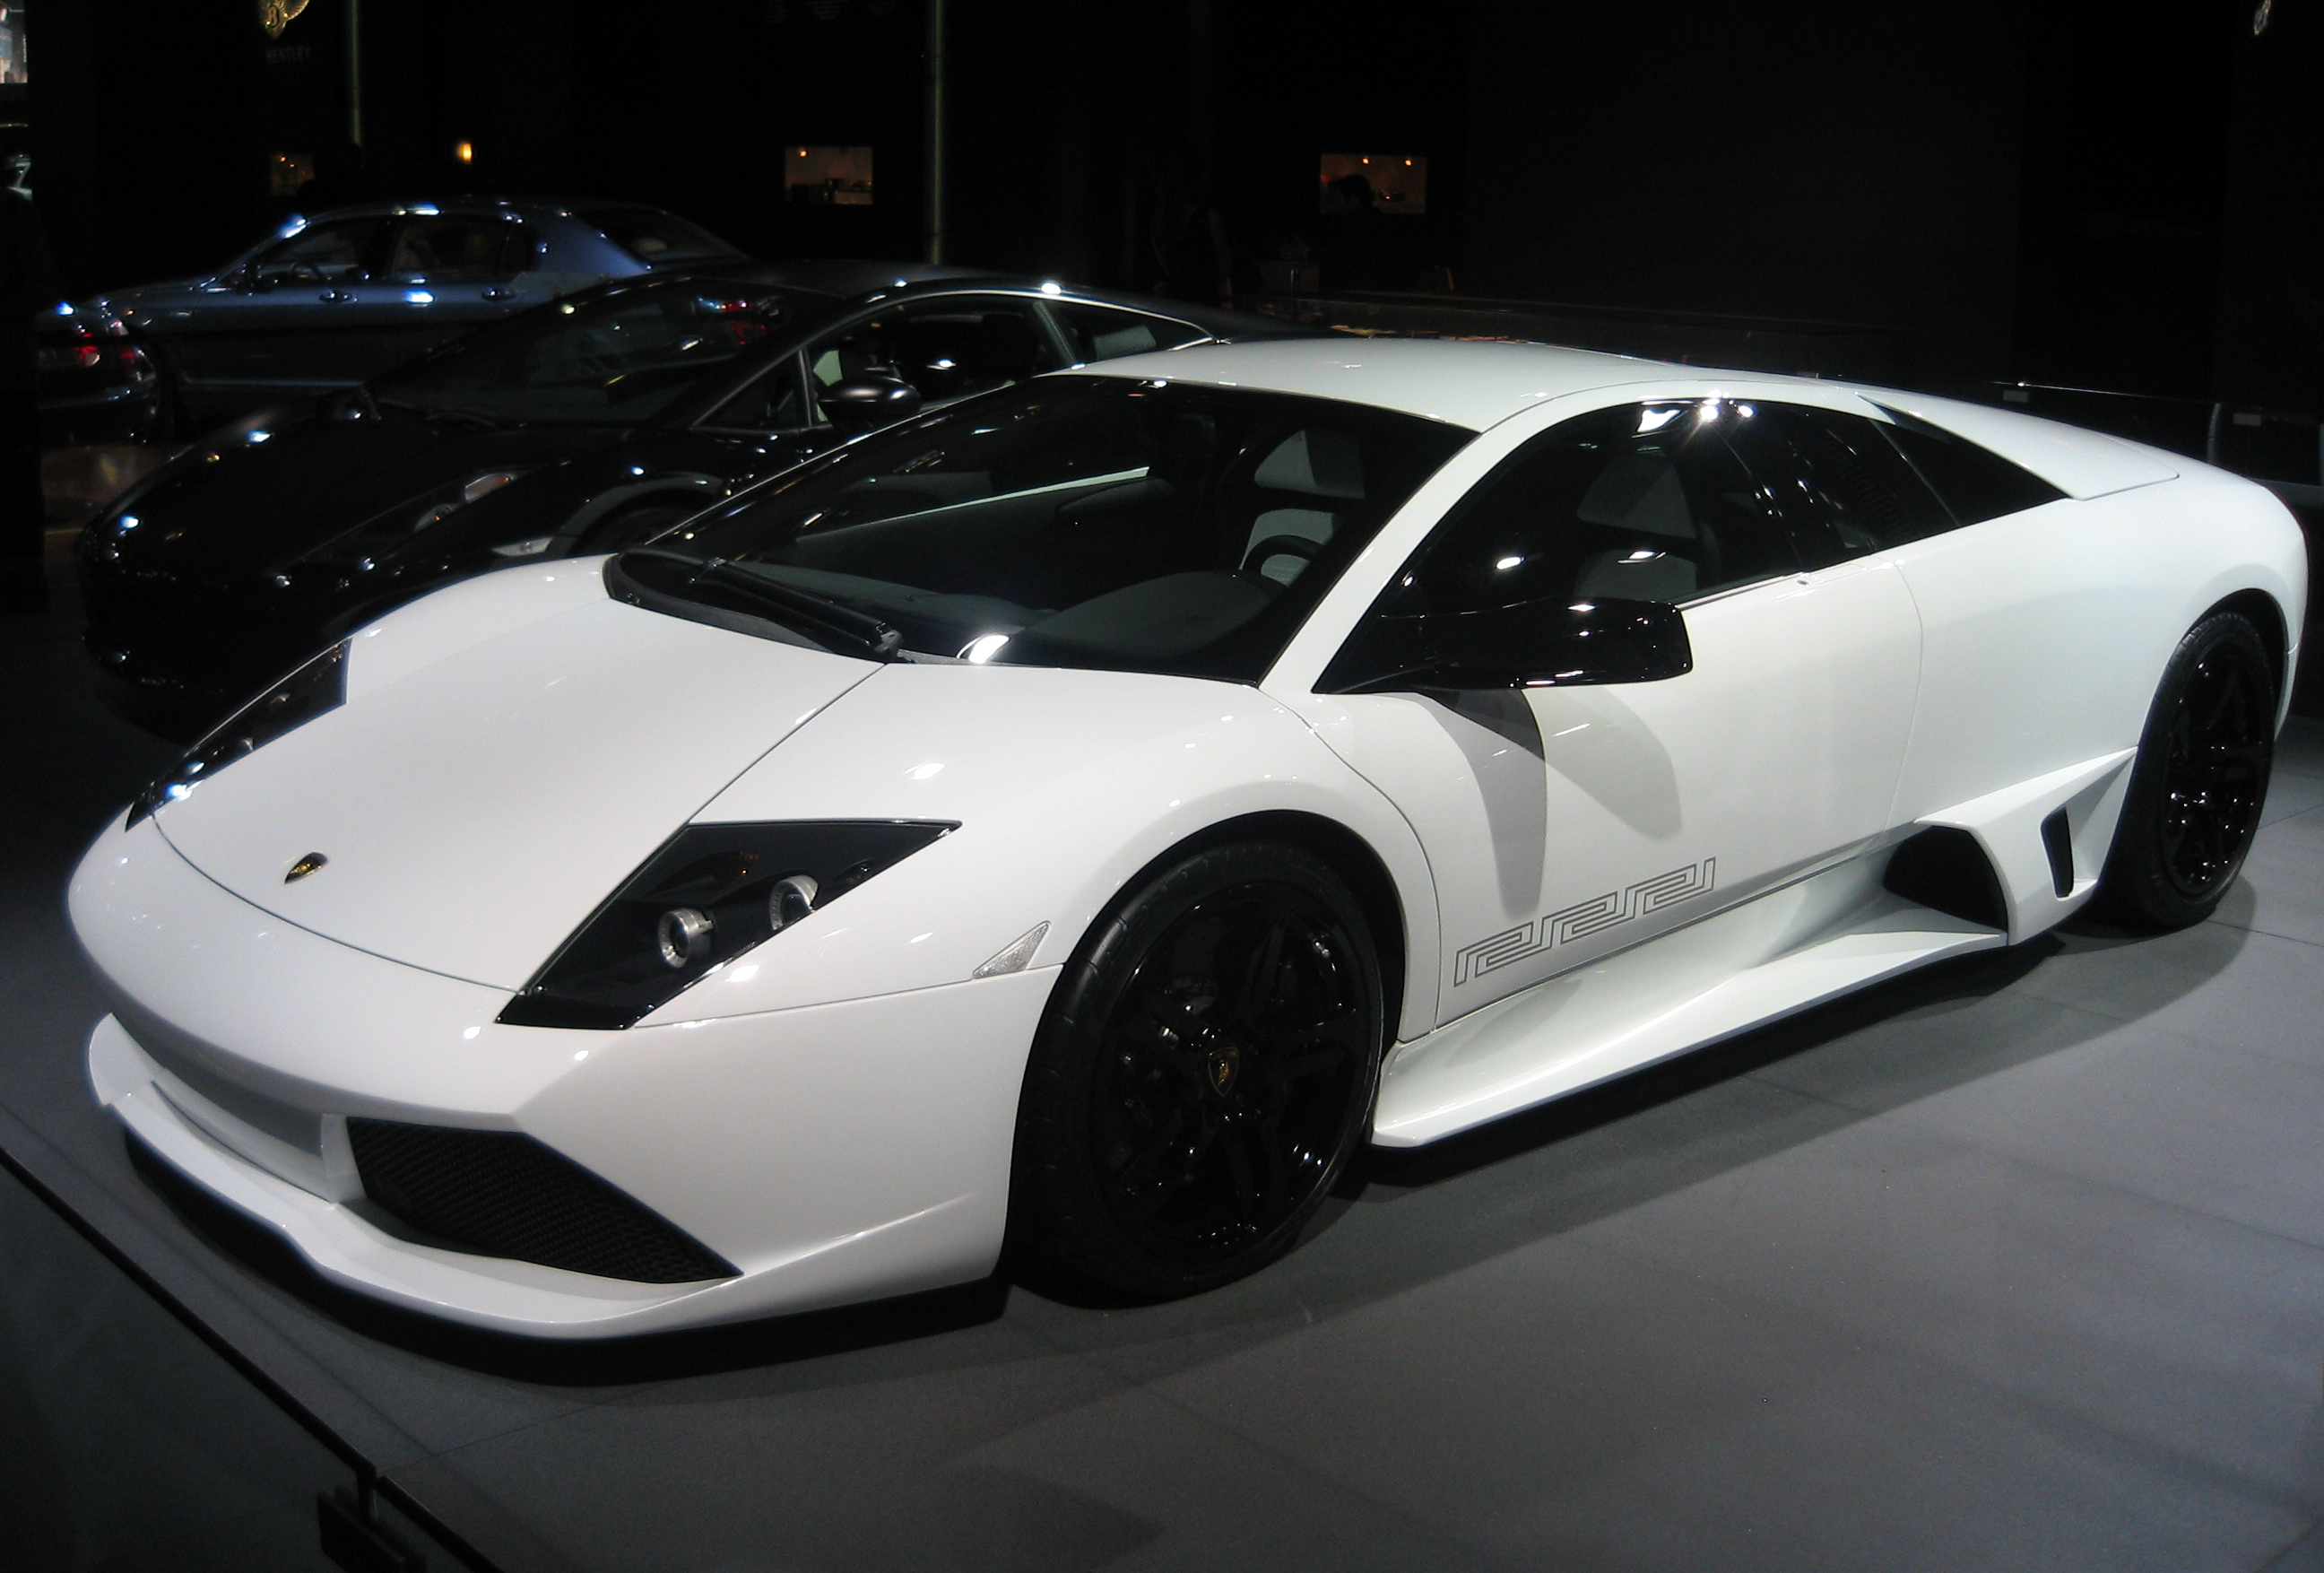 Exotic Sport Cars Super Cars Of Lamborghini Murcielago HD Wallpapers Download free images and photos [musssic.tk]